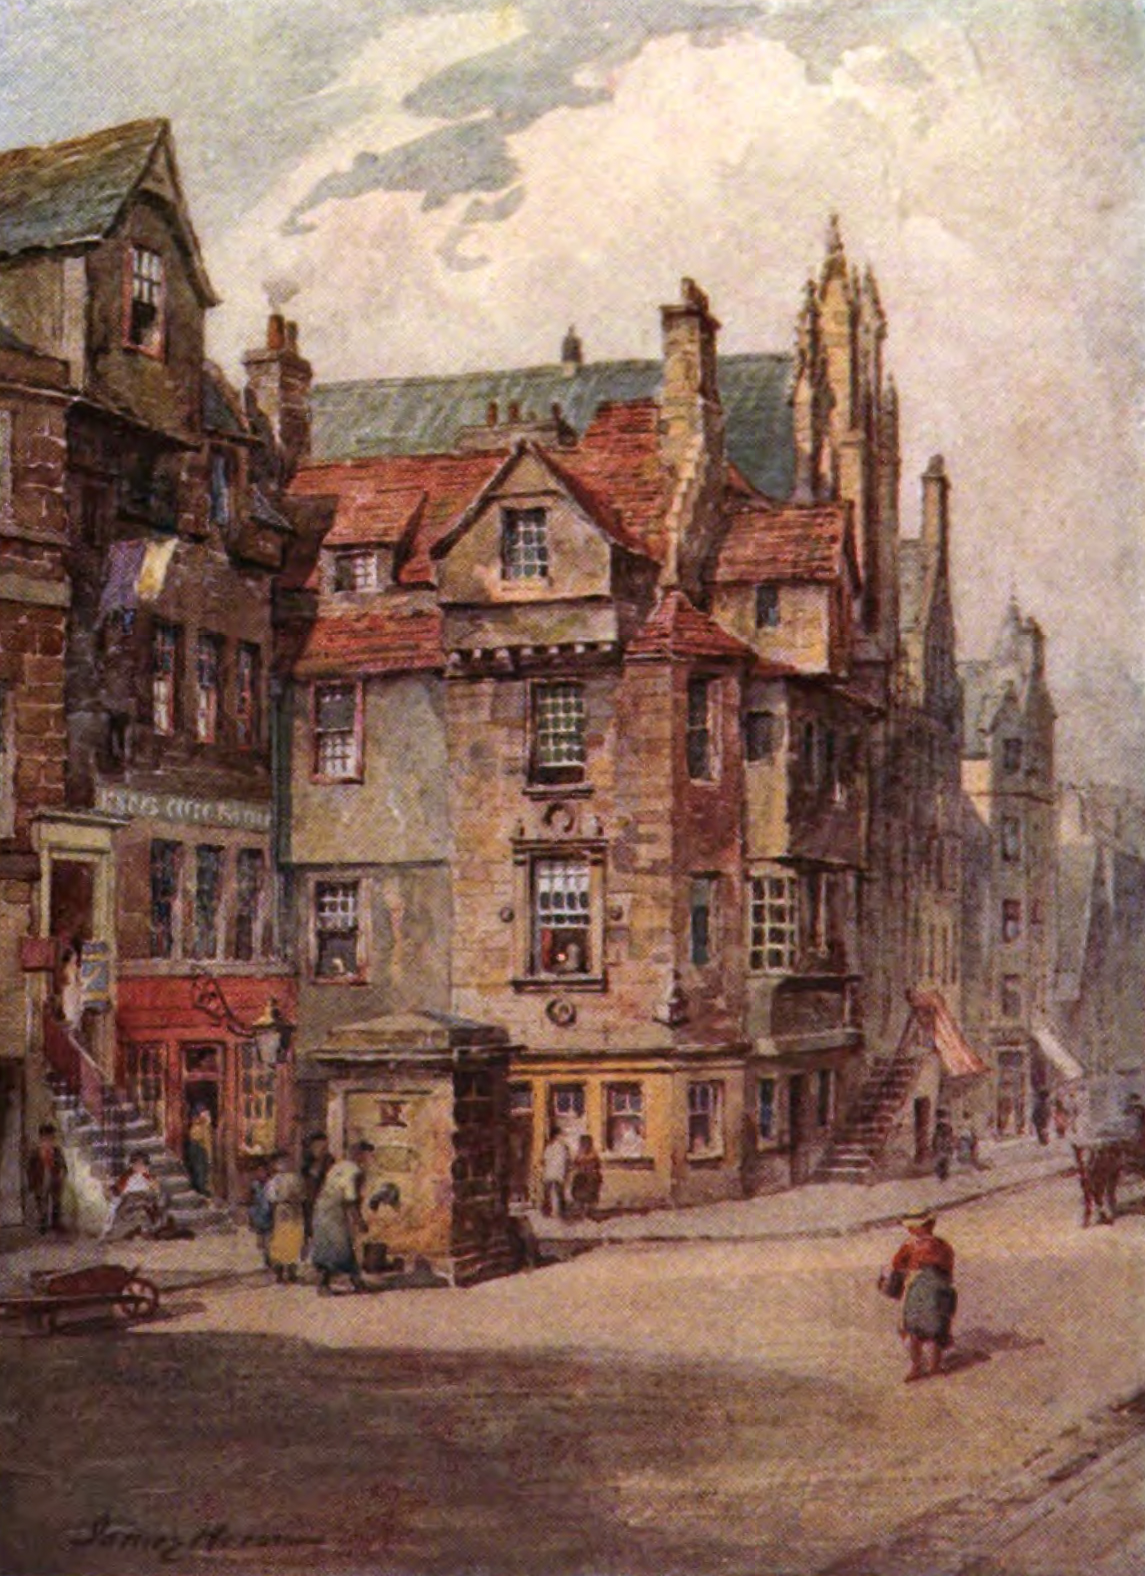 Edinburgh, Robert Louis Stevenson, James Heron, DjVu pg 44.jpg